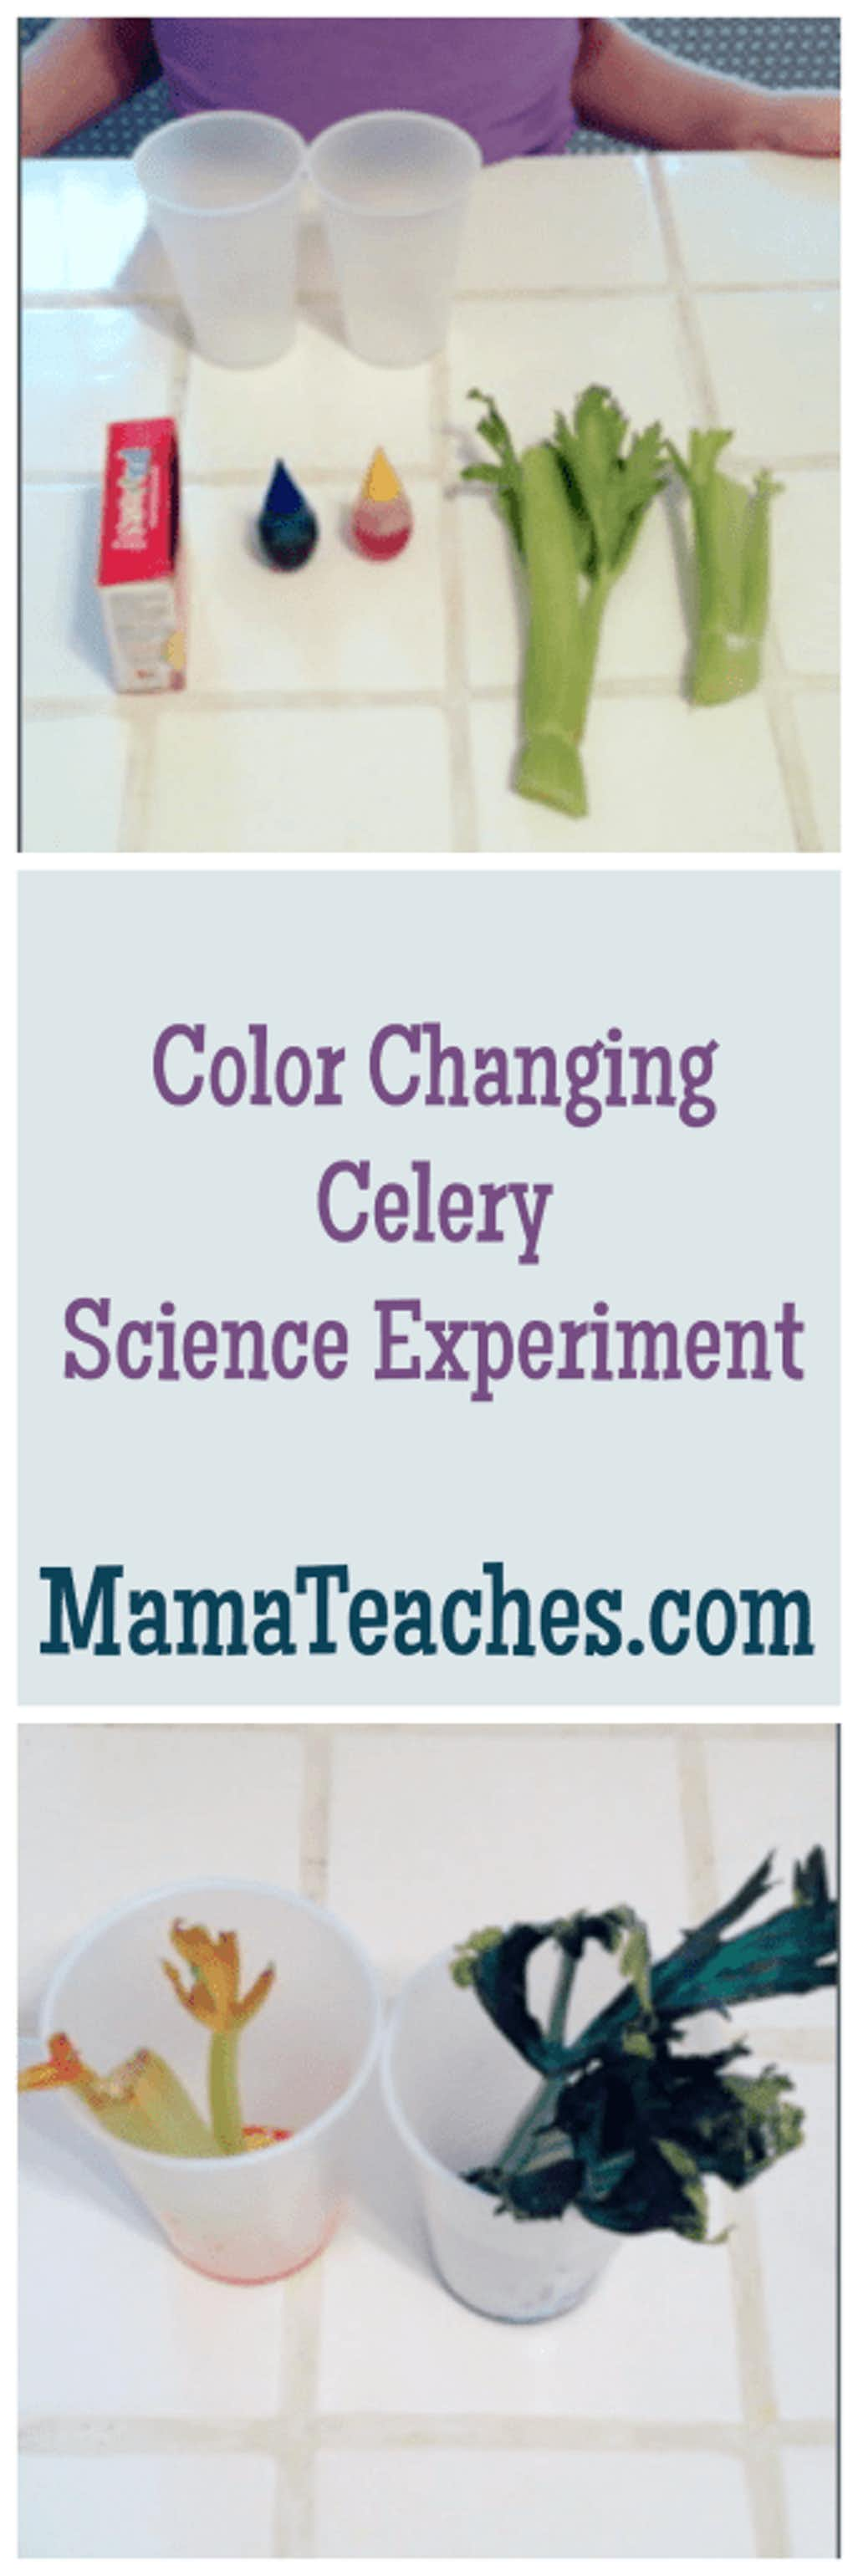 Color Changing Celery Experiment